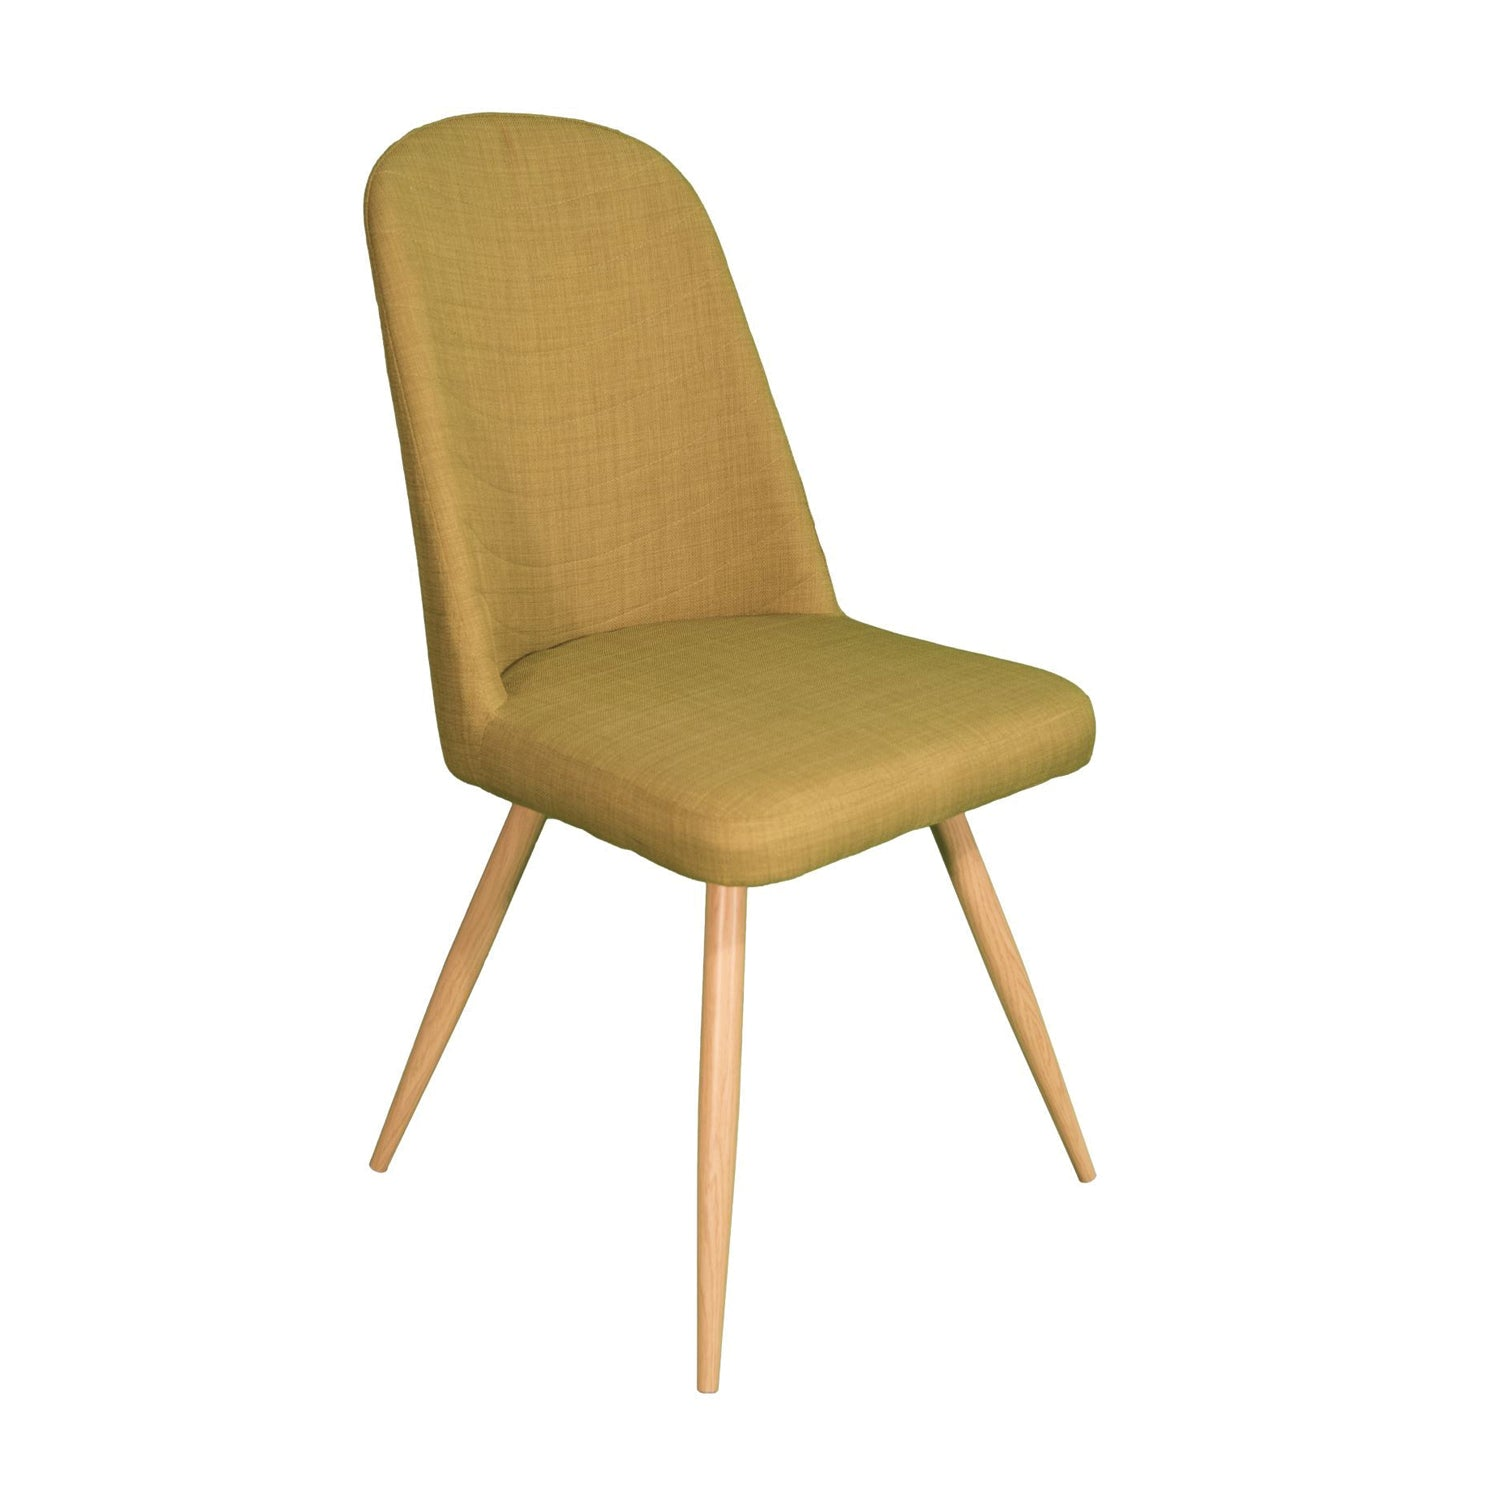 Herne Hill Scoop Dining Chair - Green